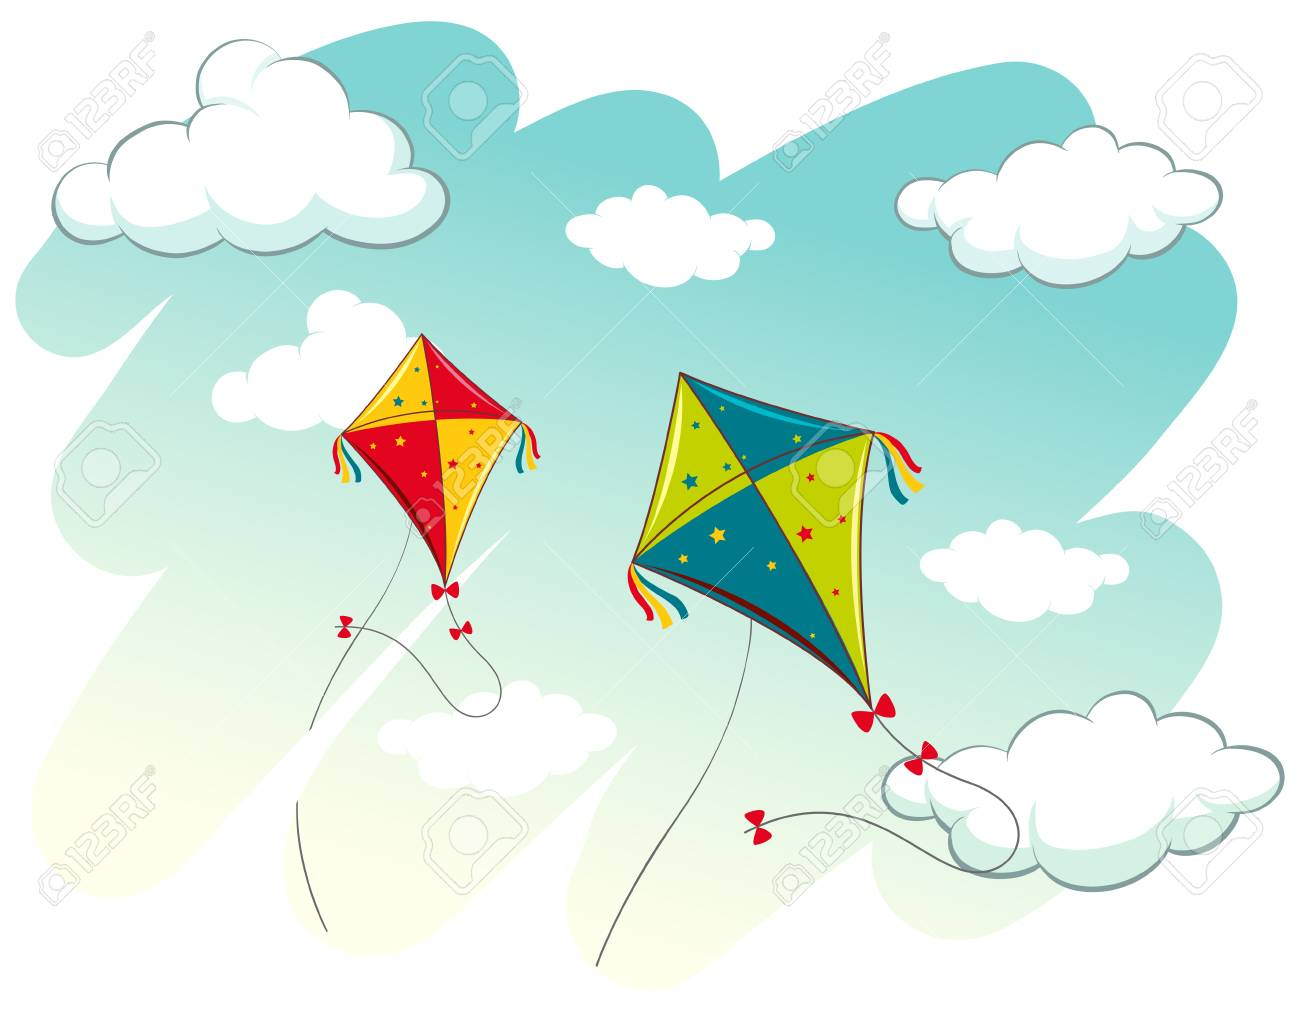 THESE KITES I FLY